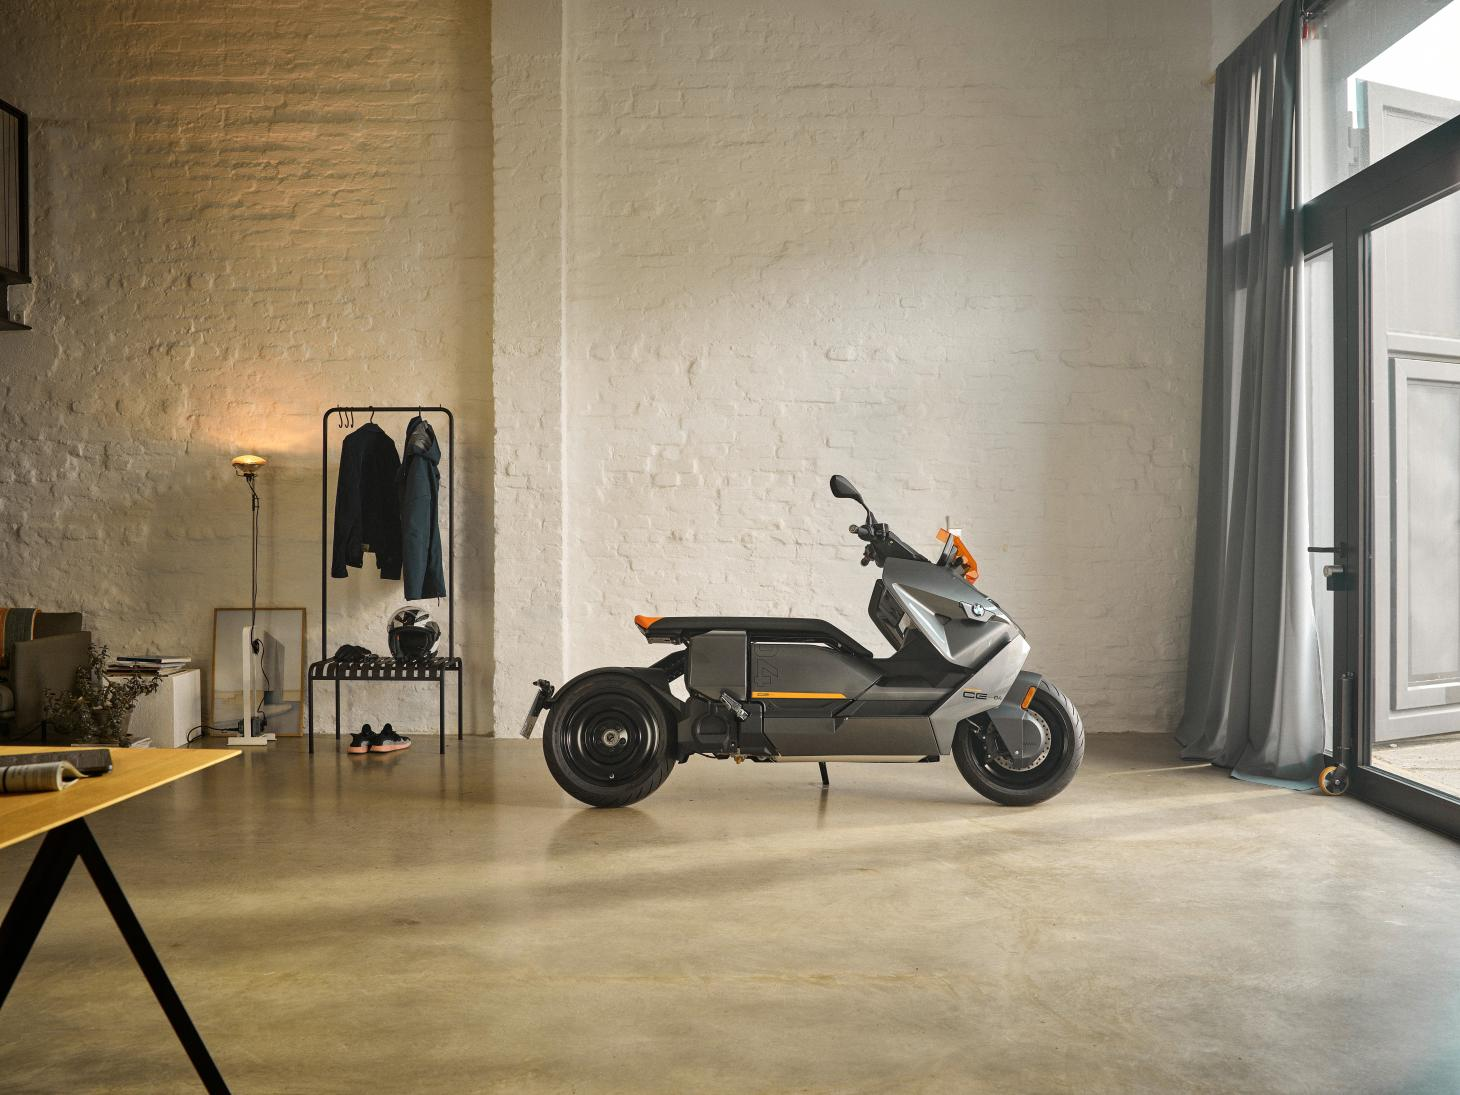 The new BMW Motorrad CE 04 Electric Scooter